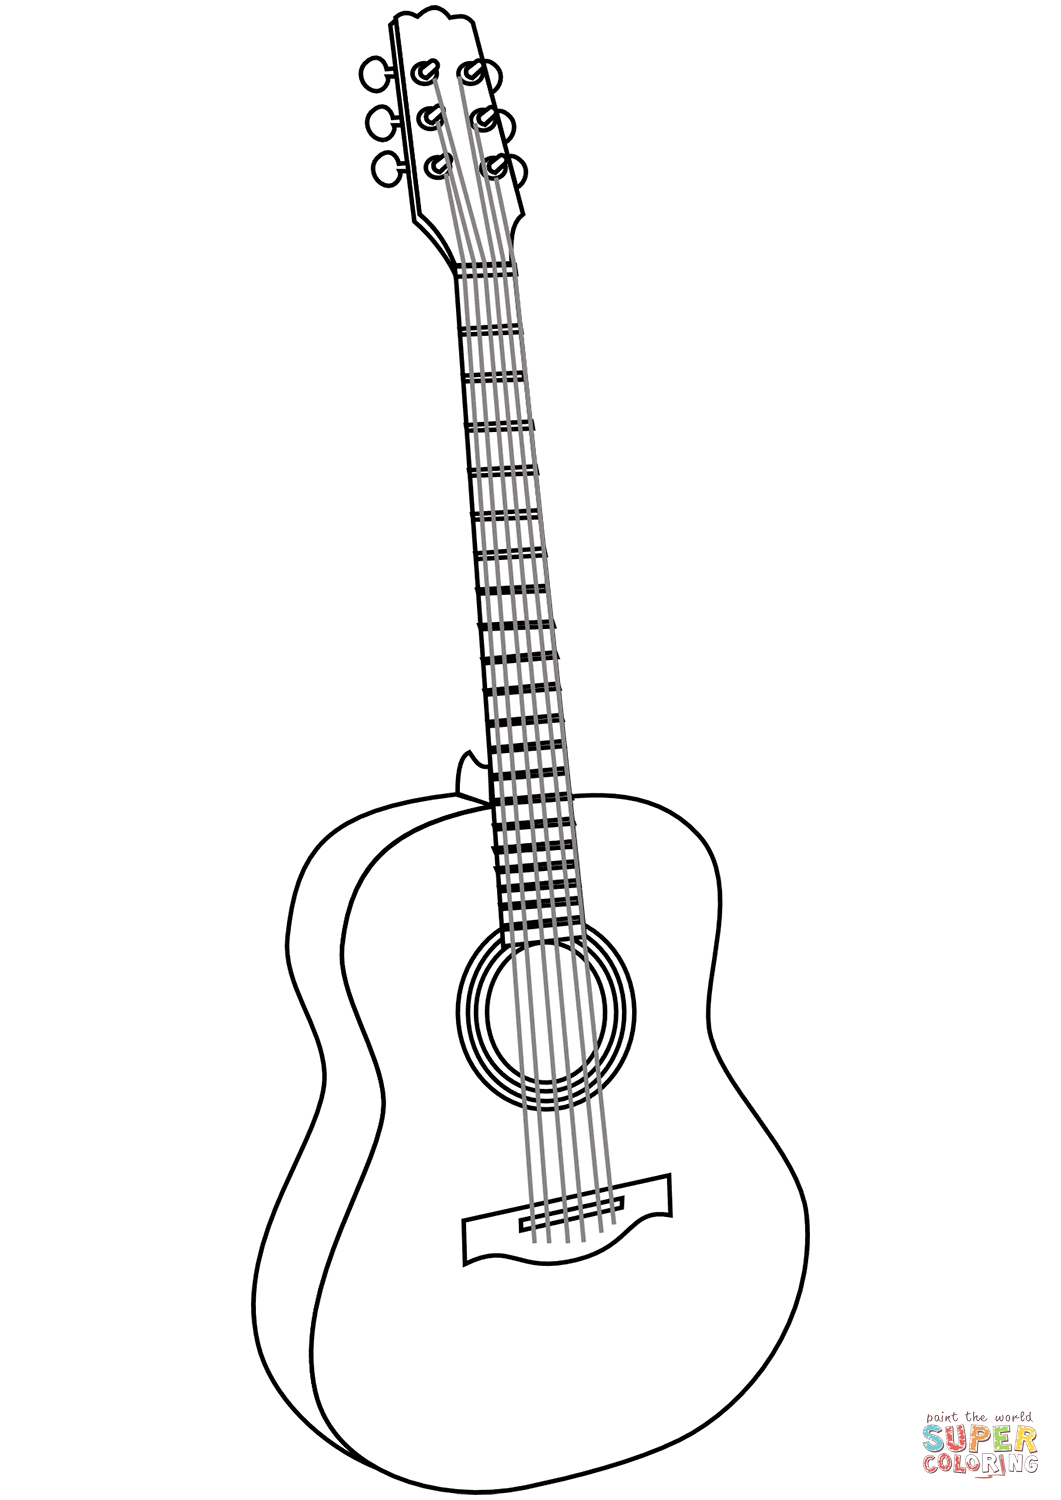 Guitar Coloring Page Free Printable Coloring Pages Coloring Pages Guitar Drawing Free Printable Coloring